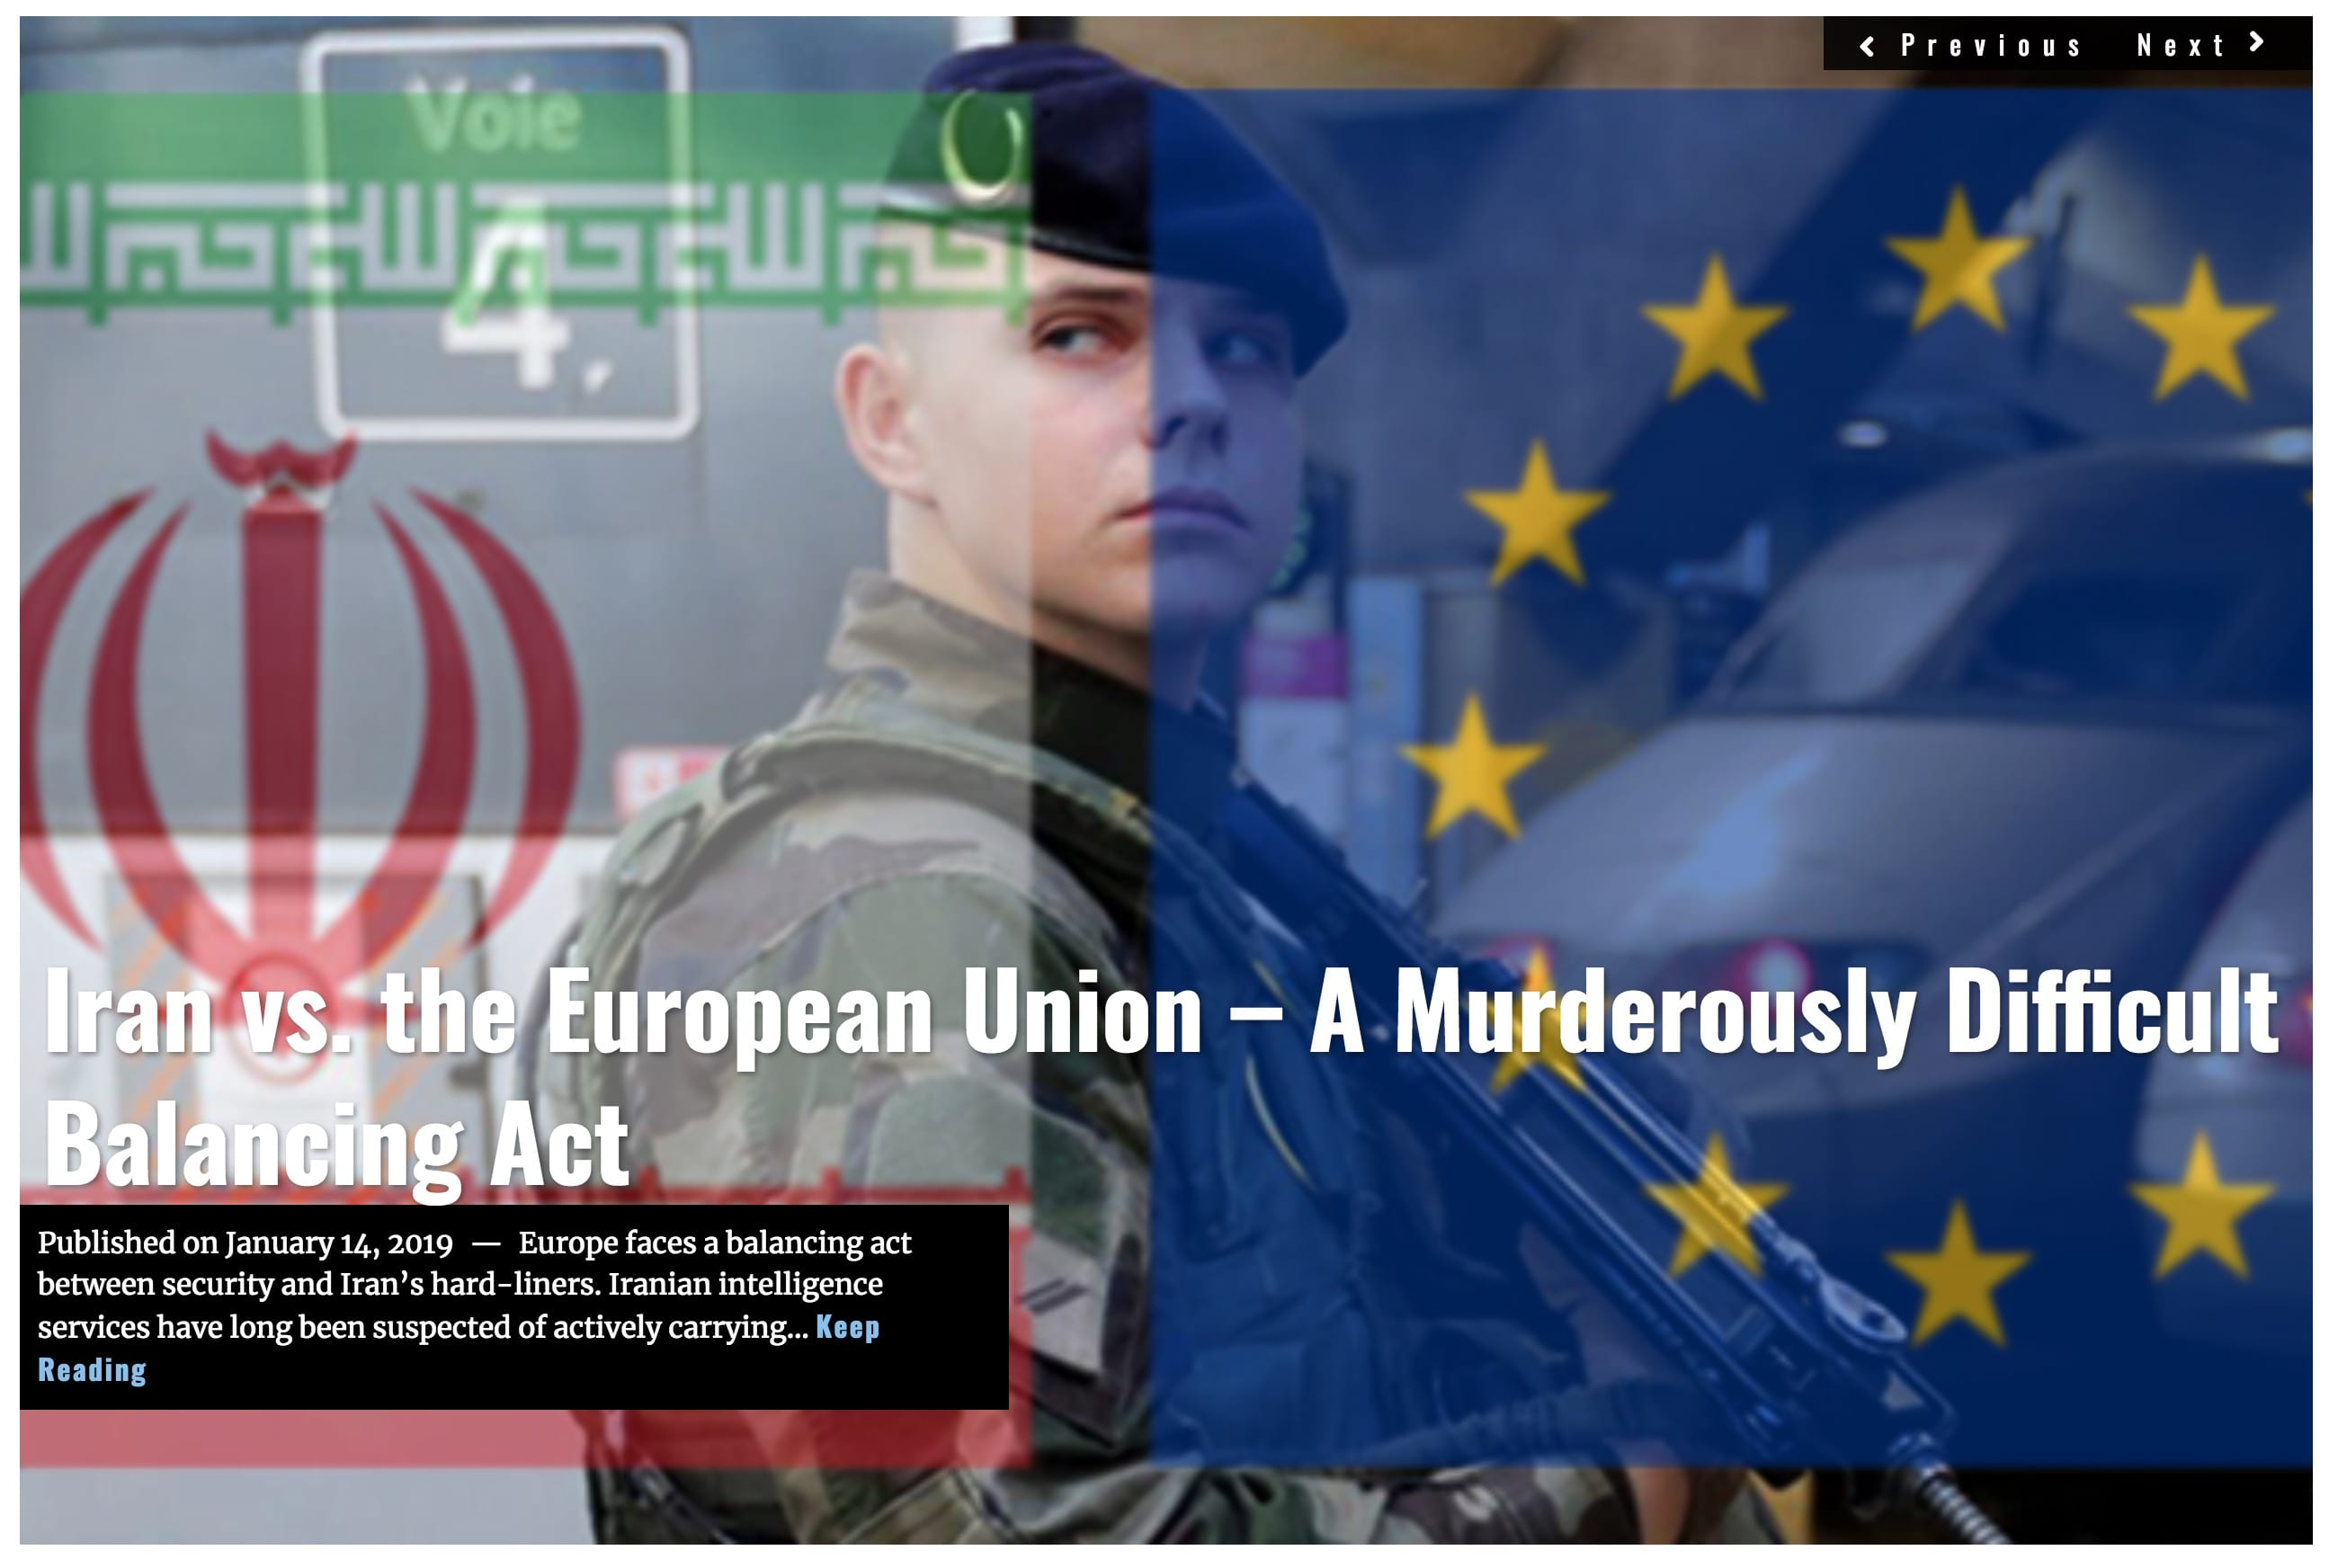 Image Lima Charlie News Headline Iran vs. the European Union - JAN 14 2019